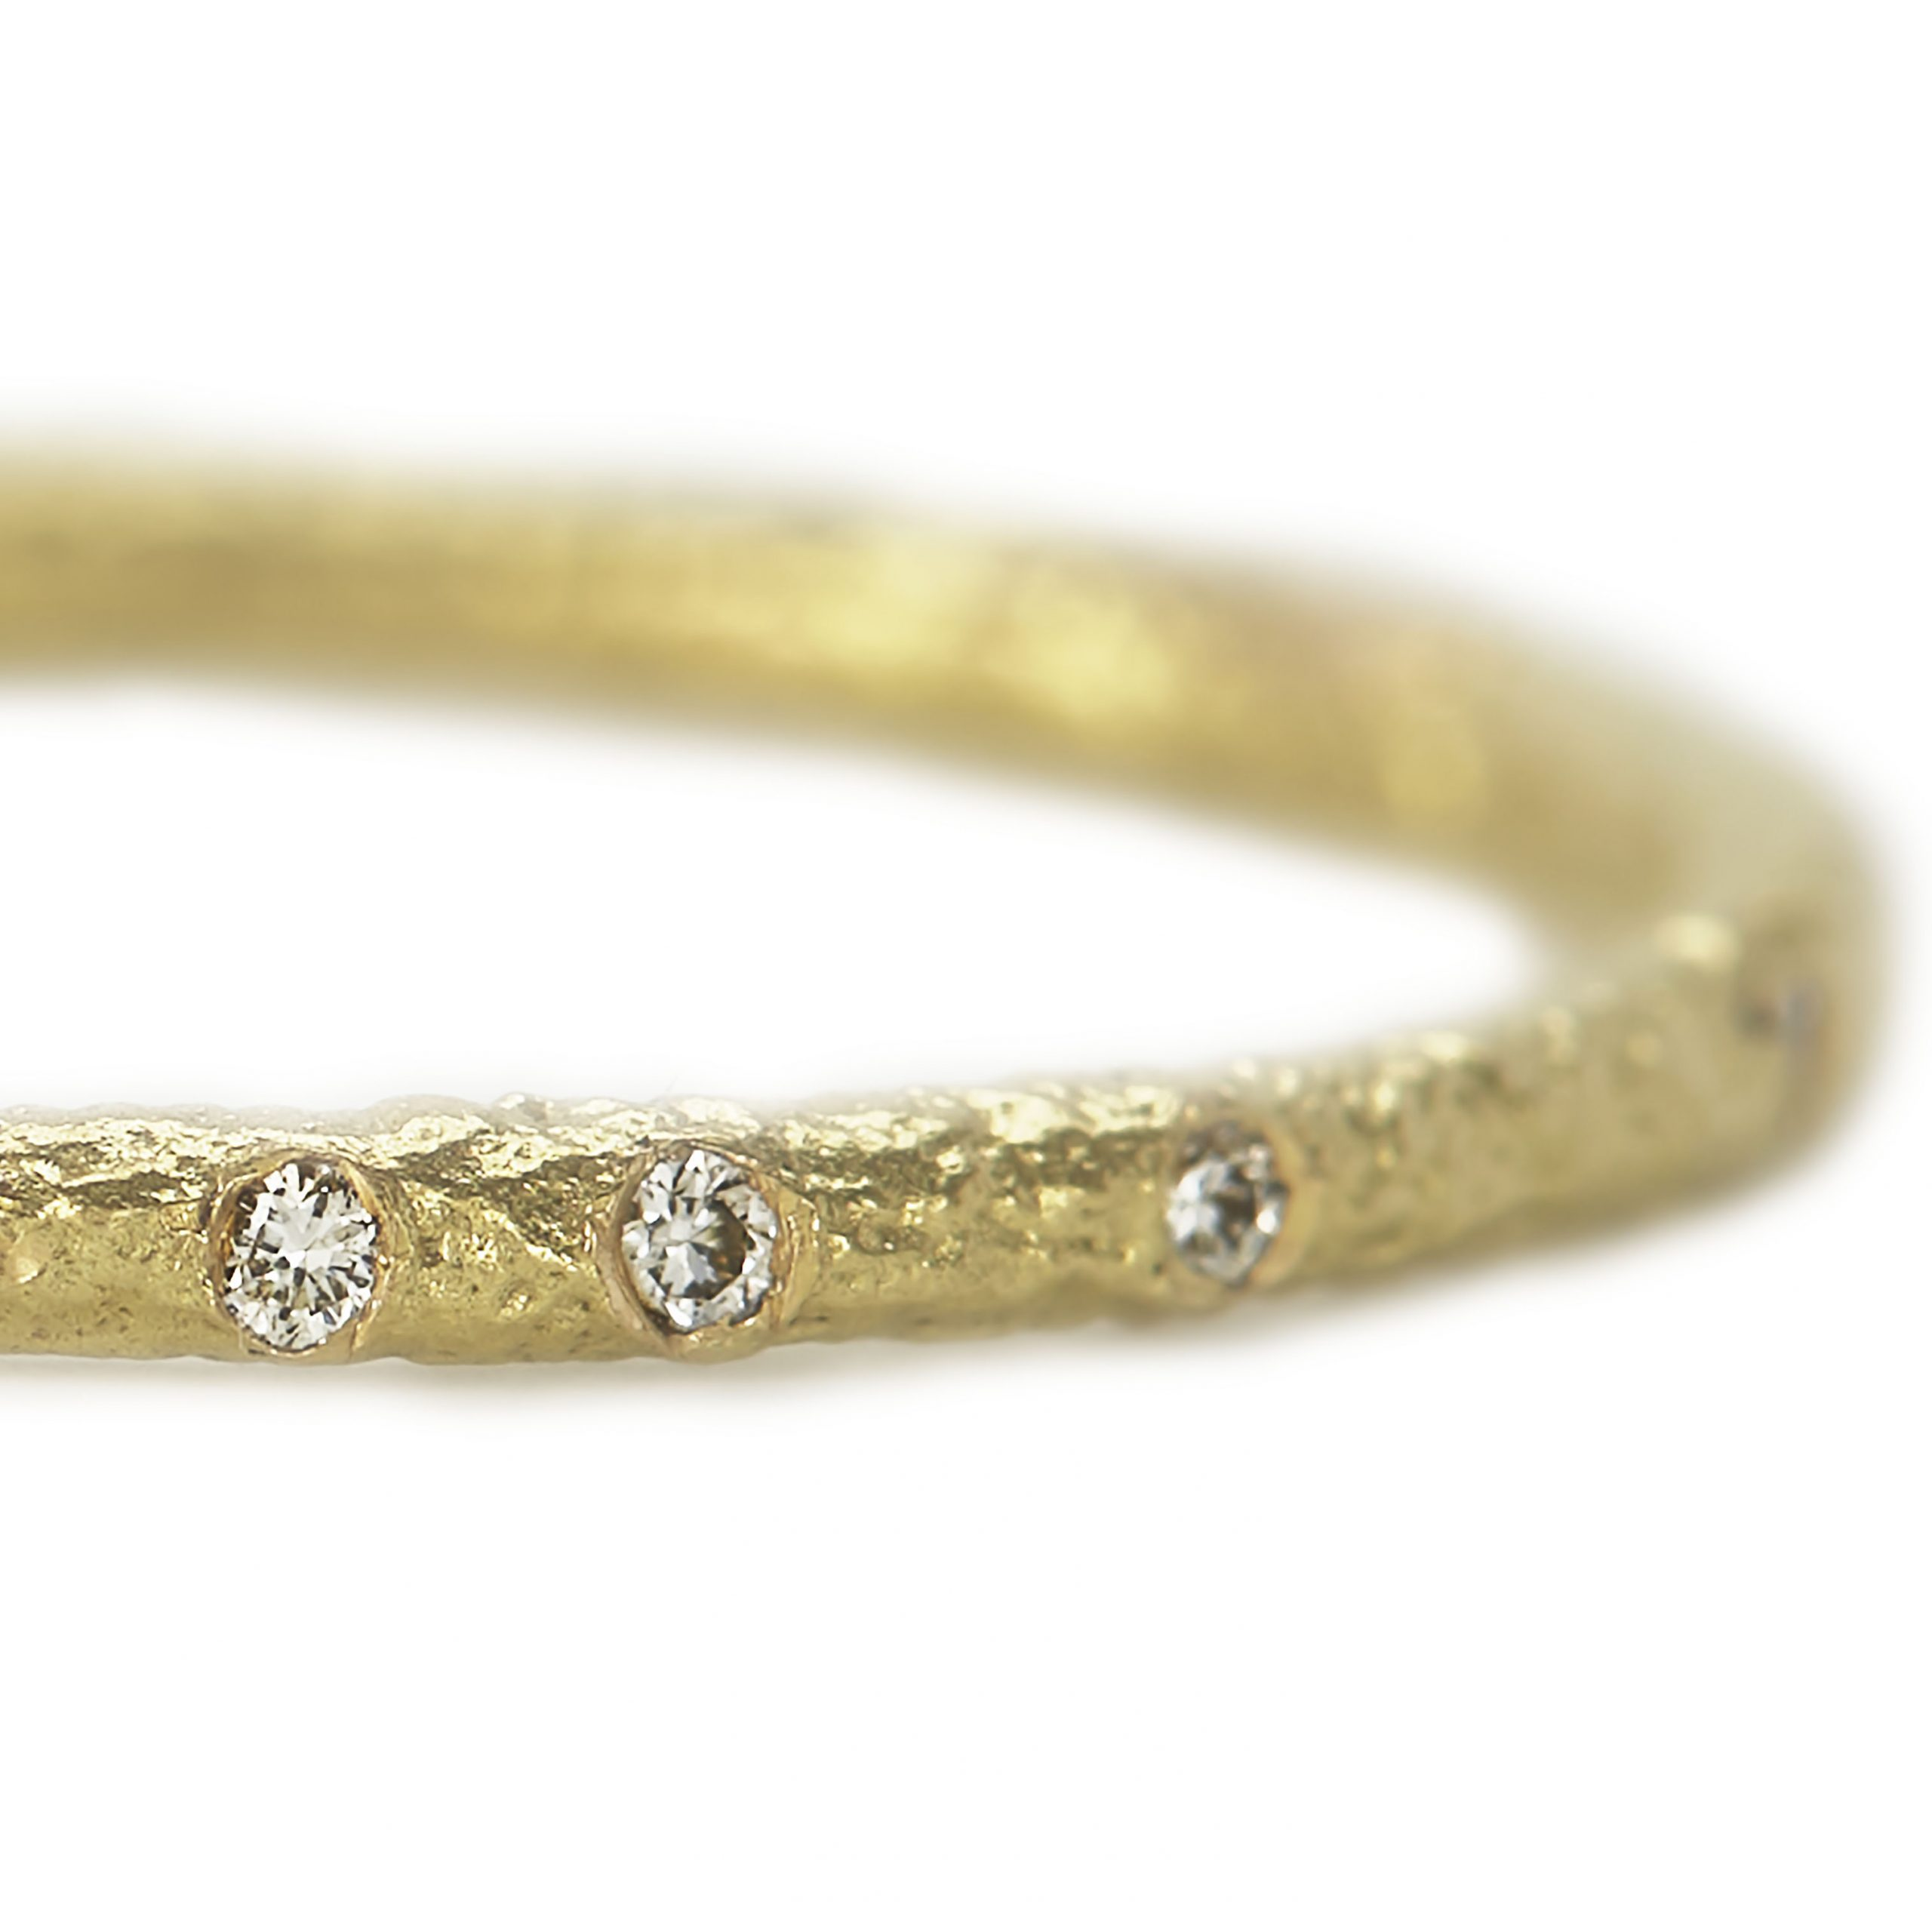 Diamond Scattered Eternity Ring – White Diamond, 18ct Yellow Gold